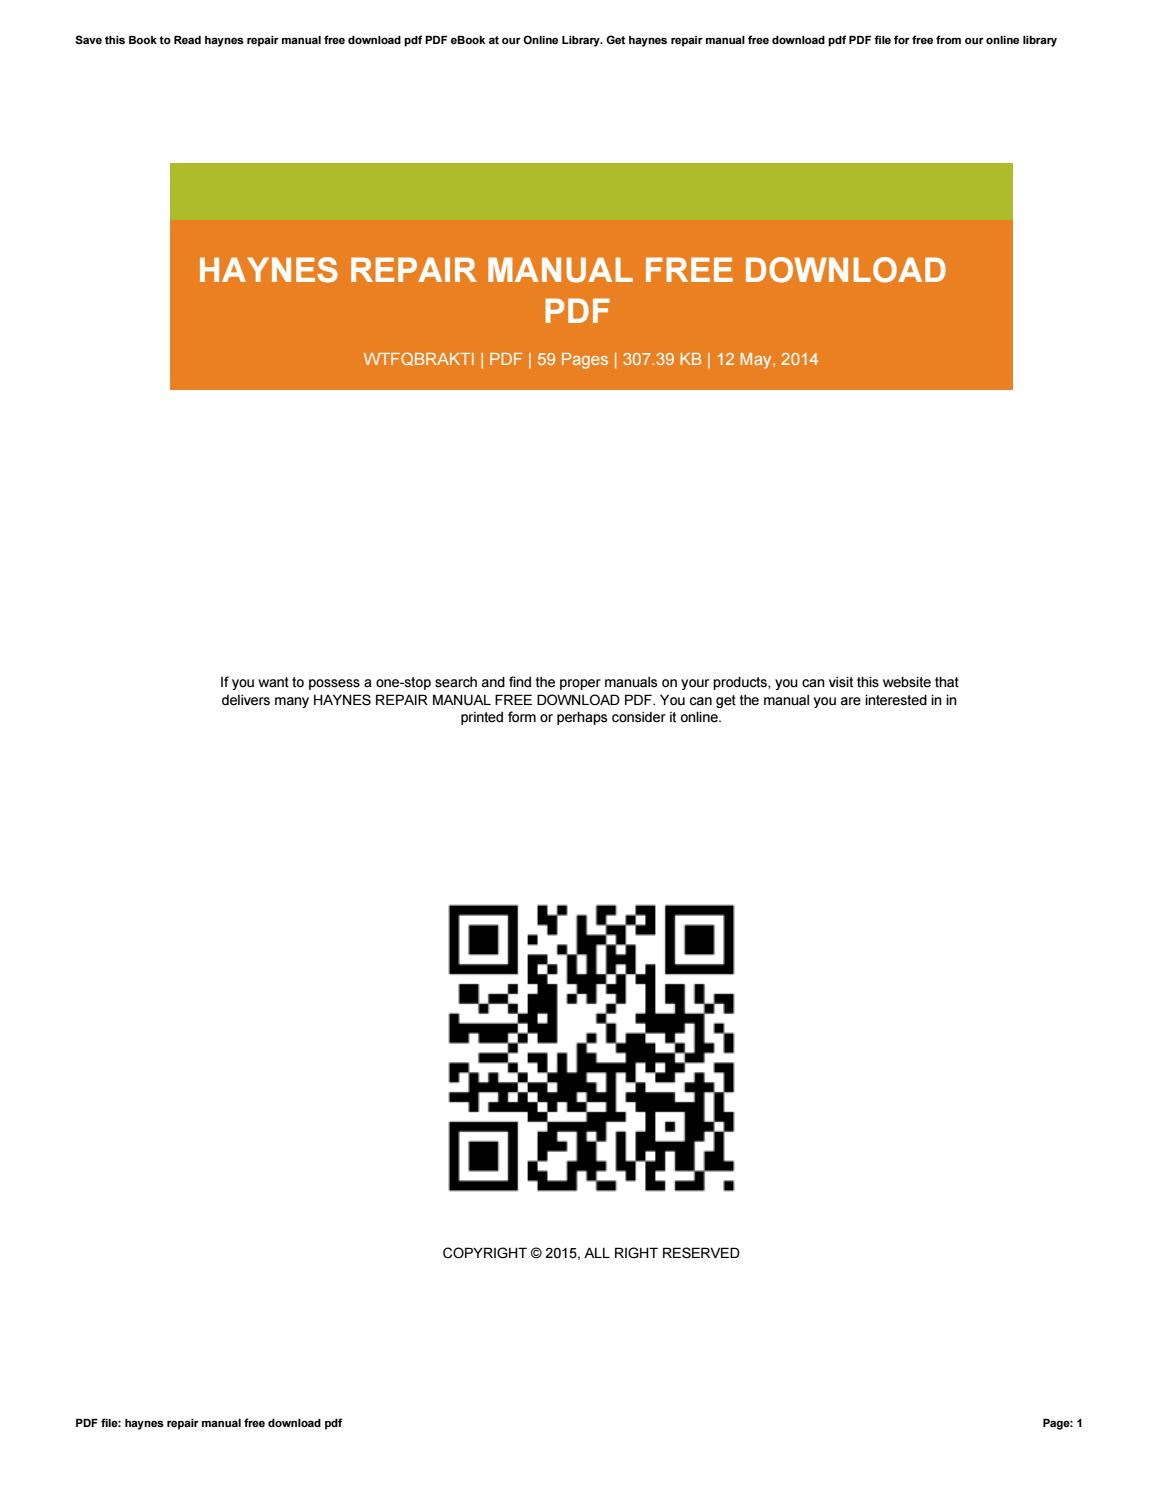 Haynes Repair Manual Pdf Free